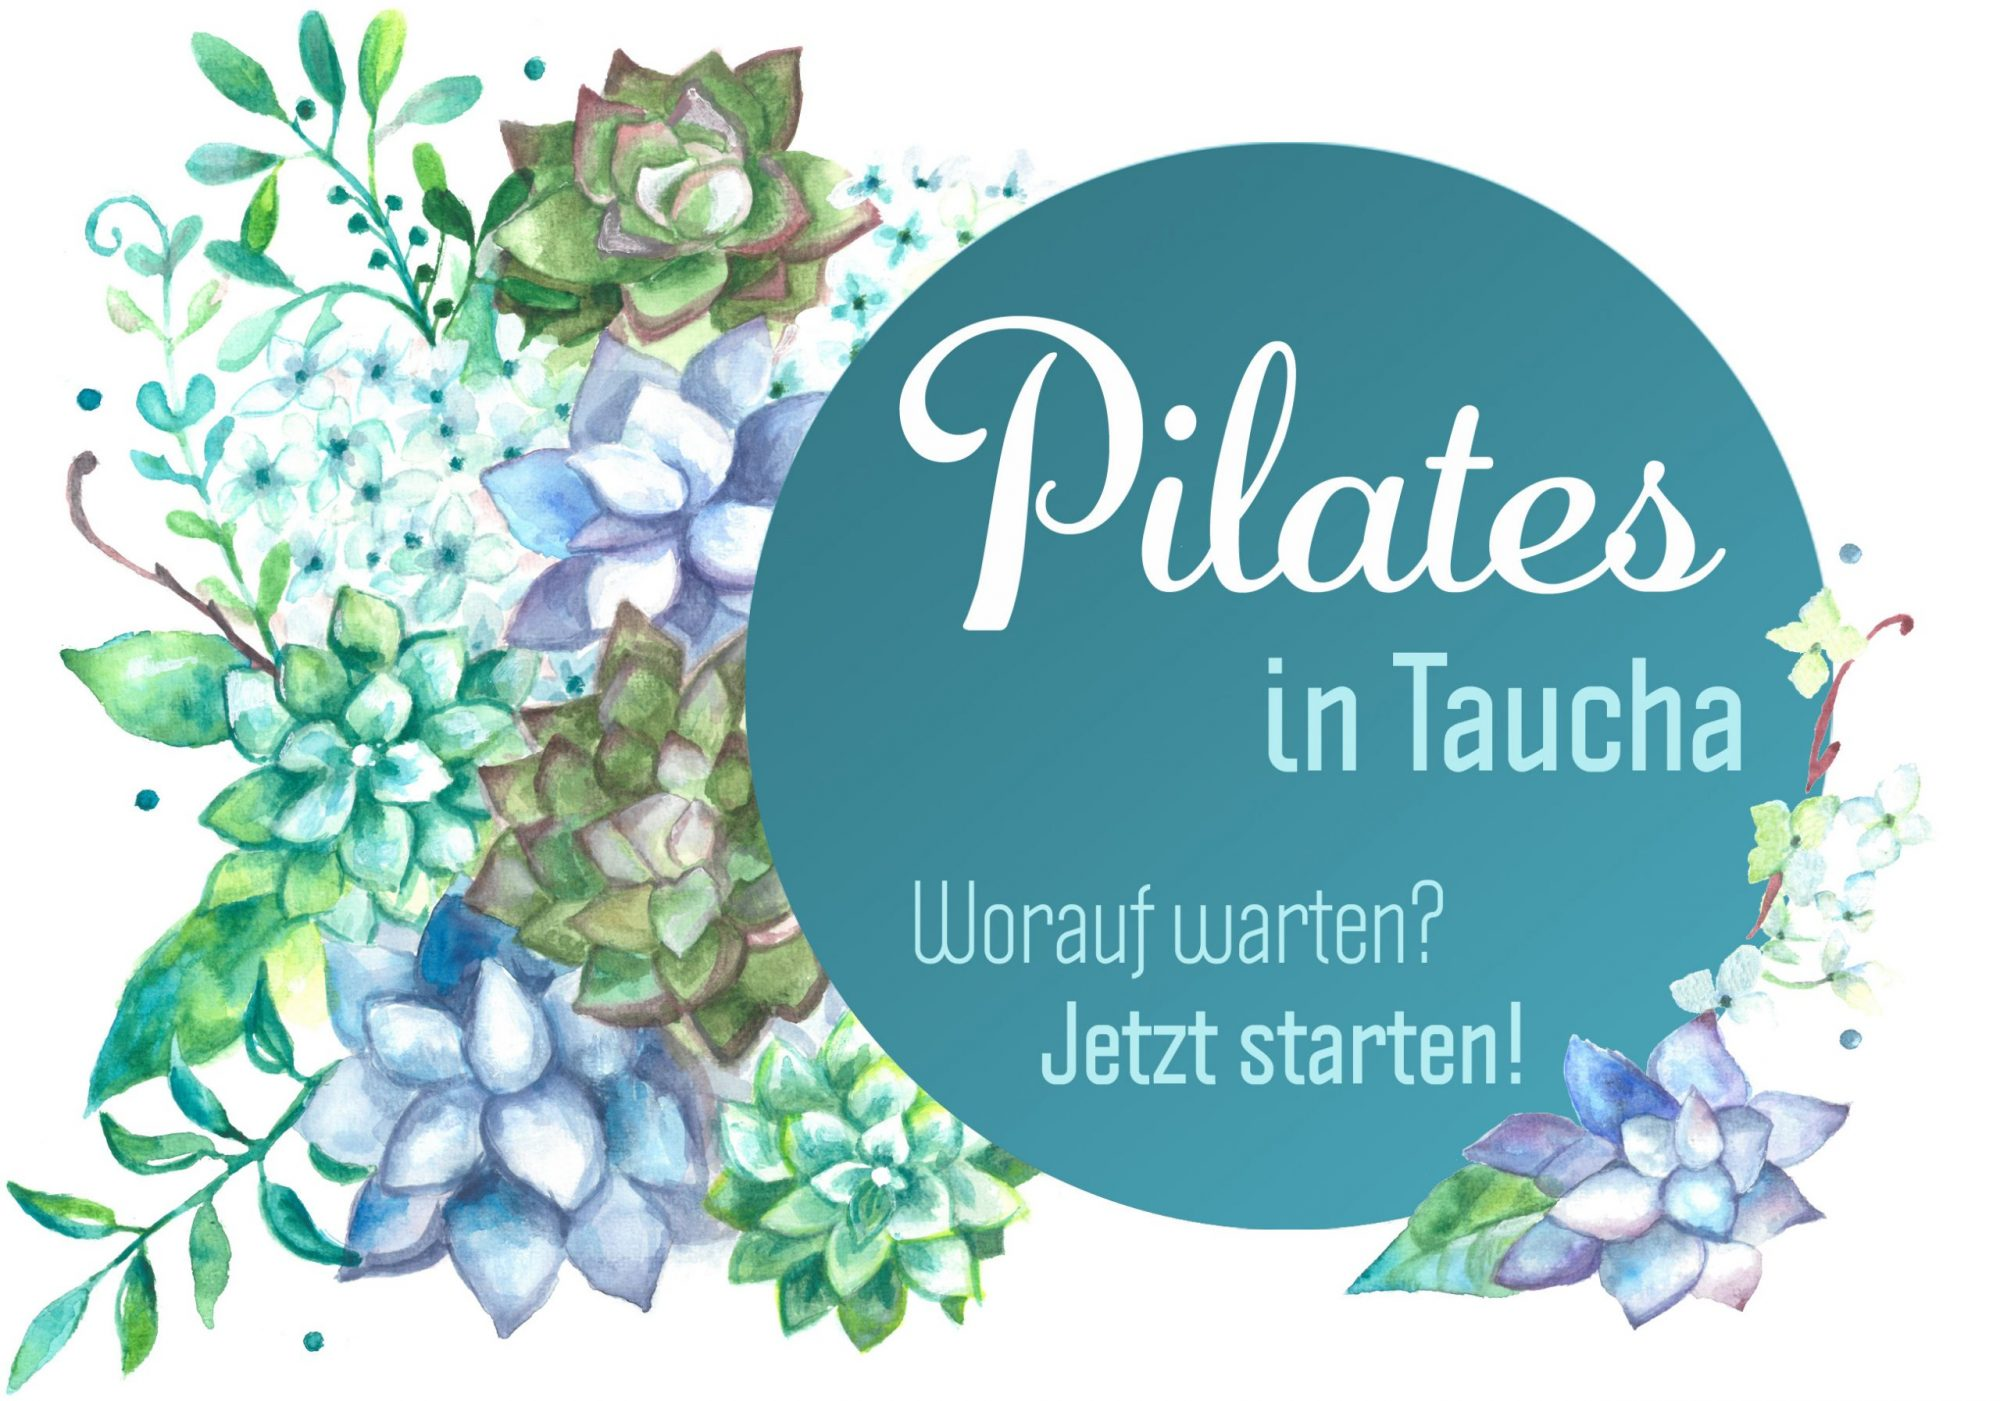 Pilates in Taucha